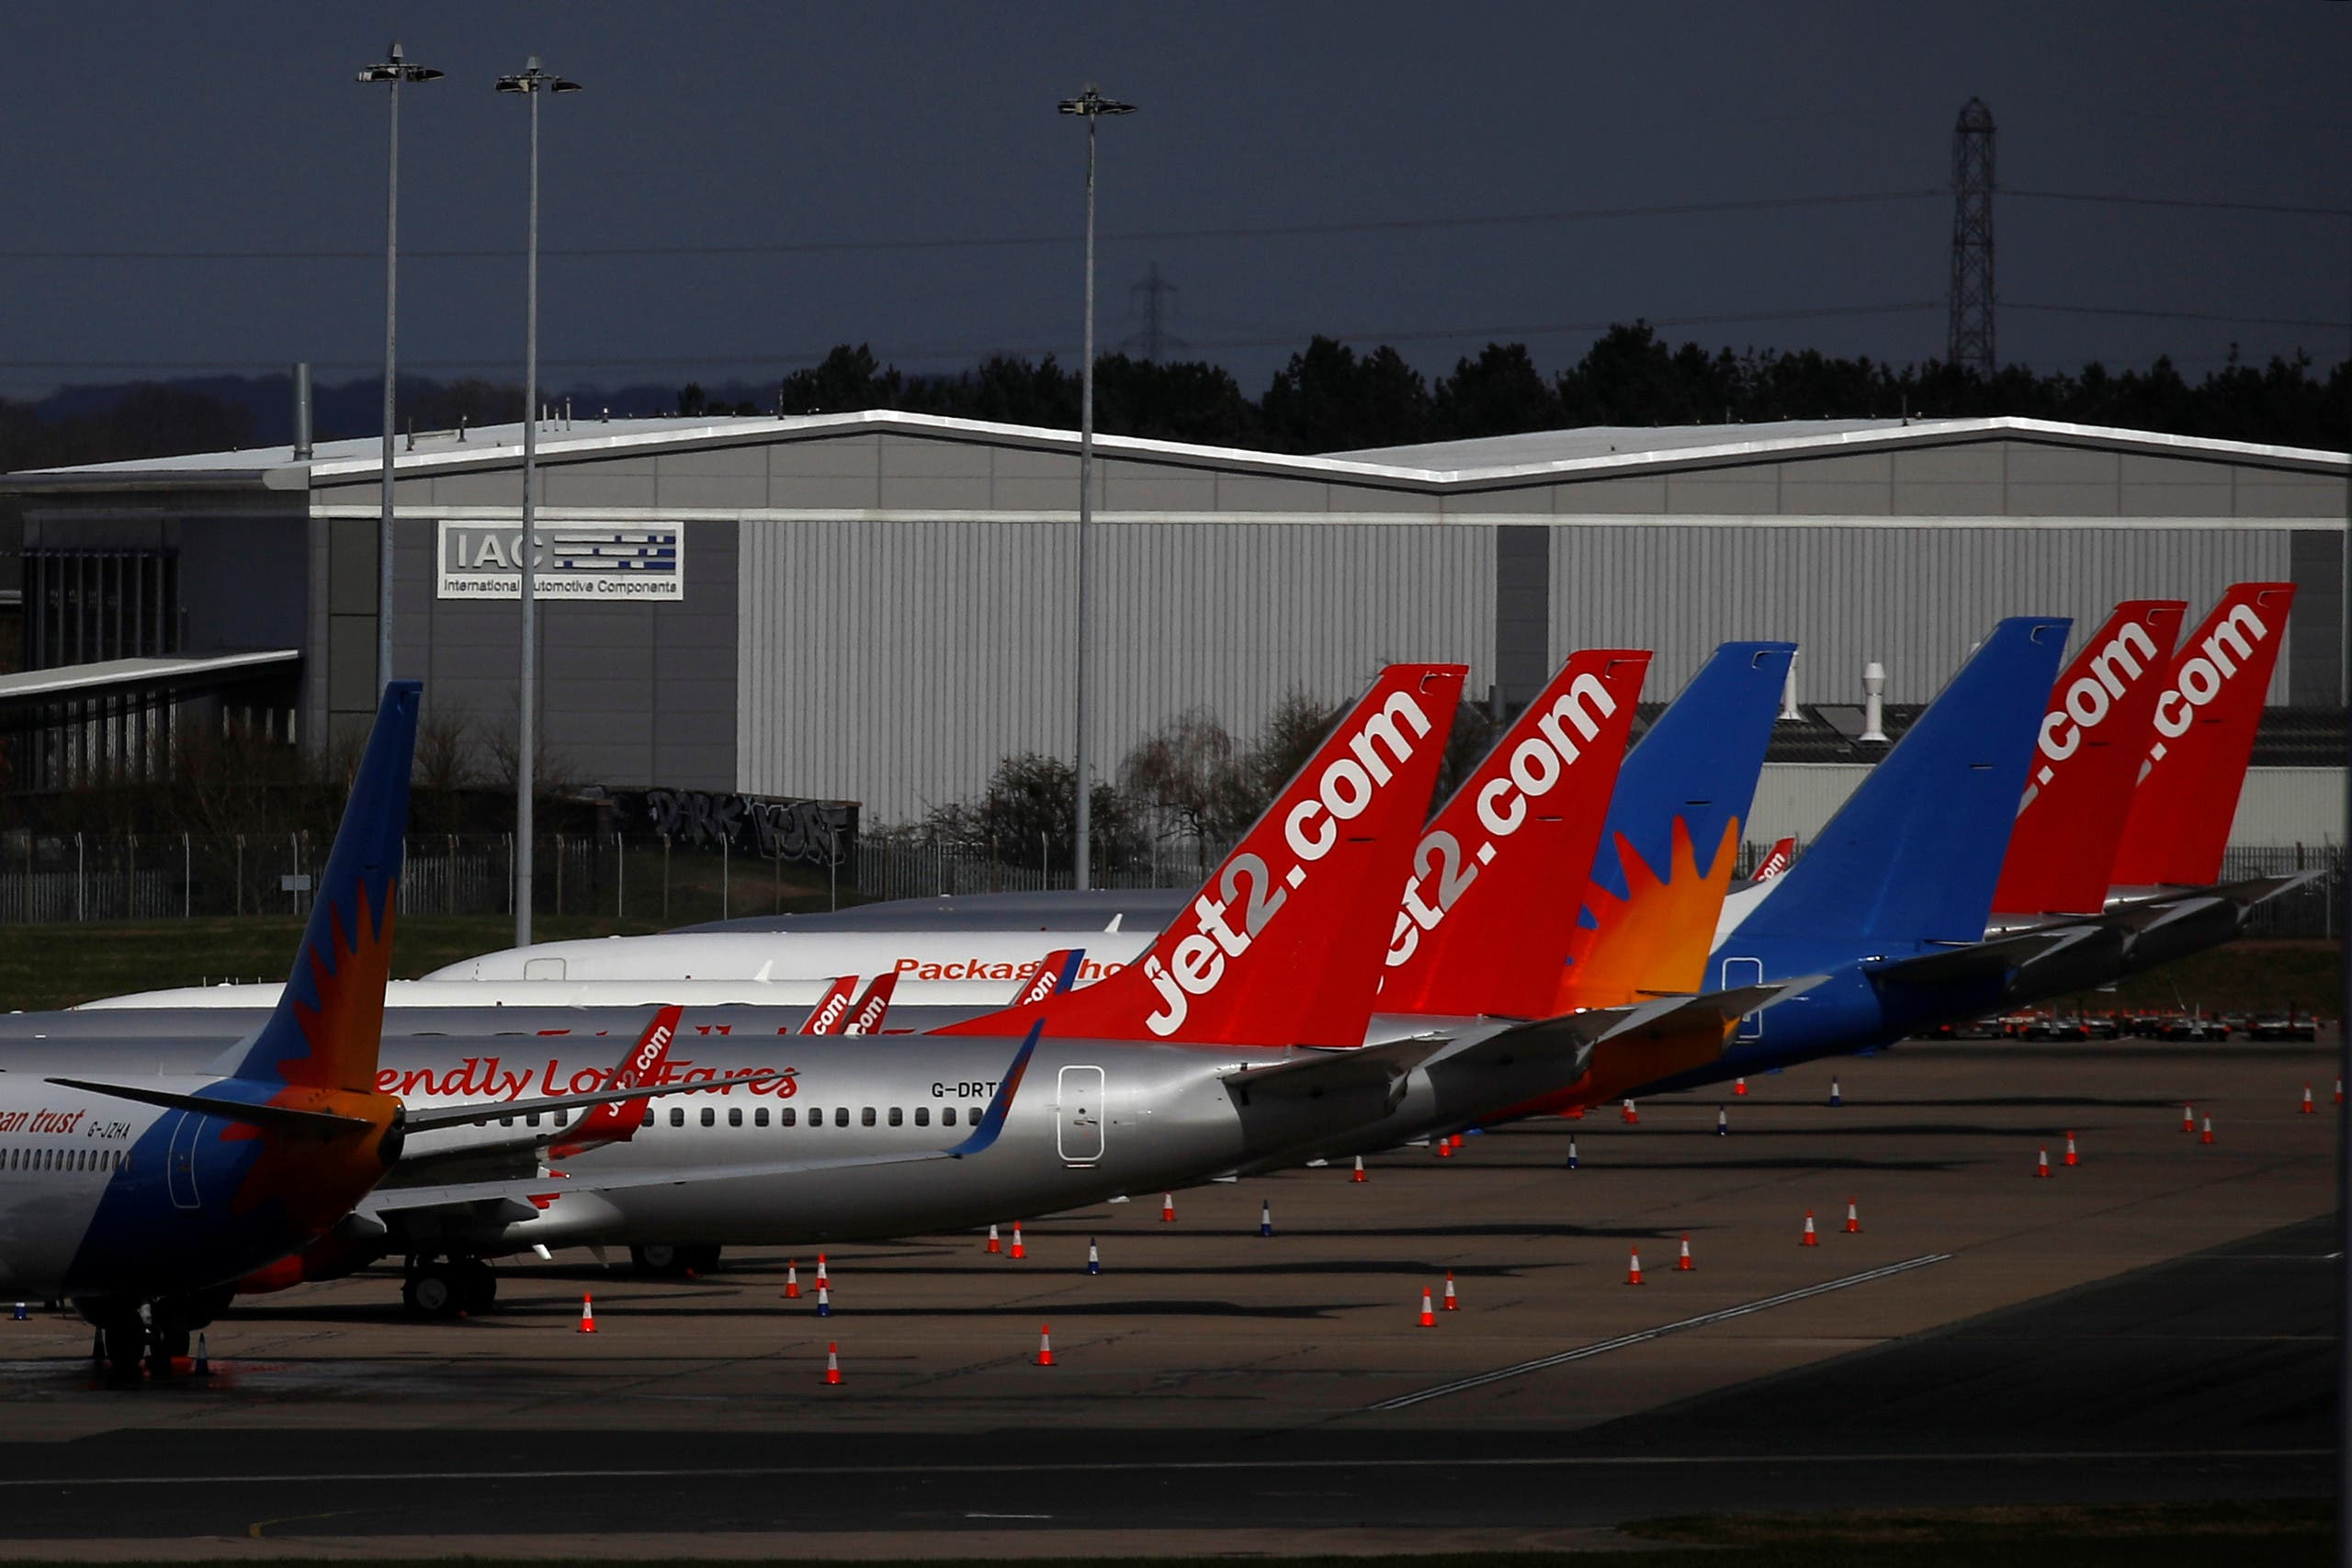 Jet2 planes seen grounded at Birmingham airport, UK, due to the coronavirus pandemic. (File photo: Reuters)